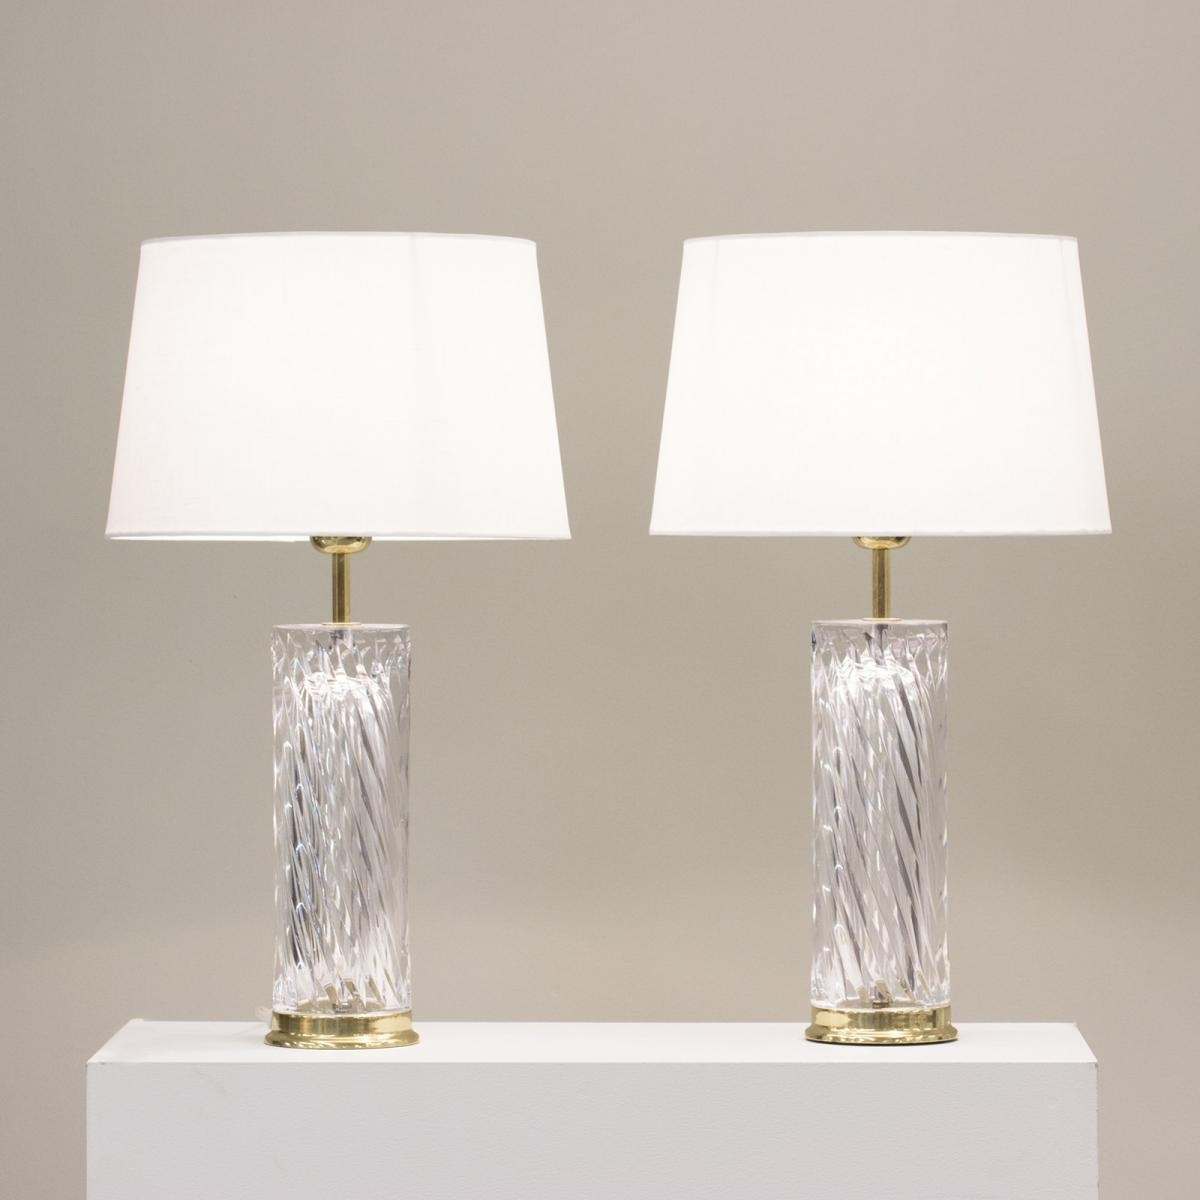 Inspiration about Top 58 Superb Tall Crystal Table Lamps Floor Lamp On Sale For Living For Set Of 2 Living Room Table Lamps (#1 of 15)